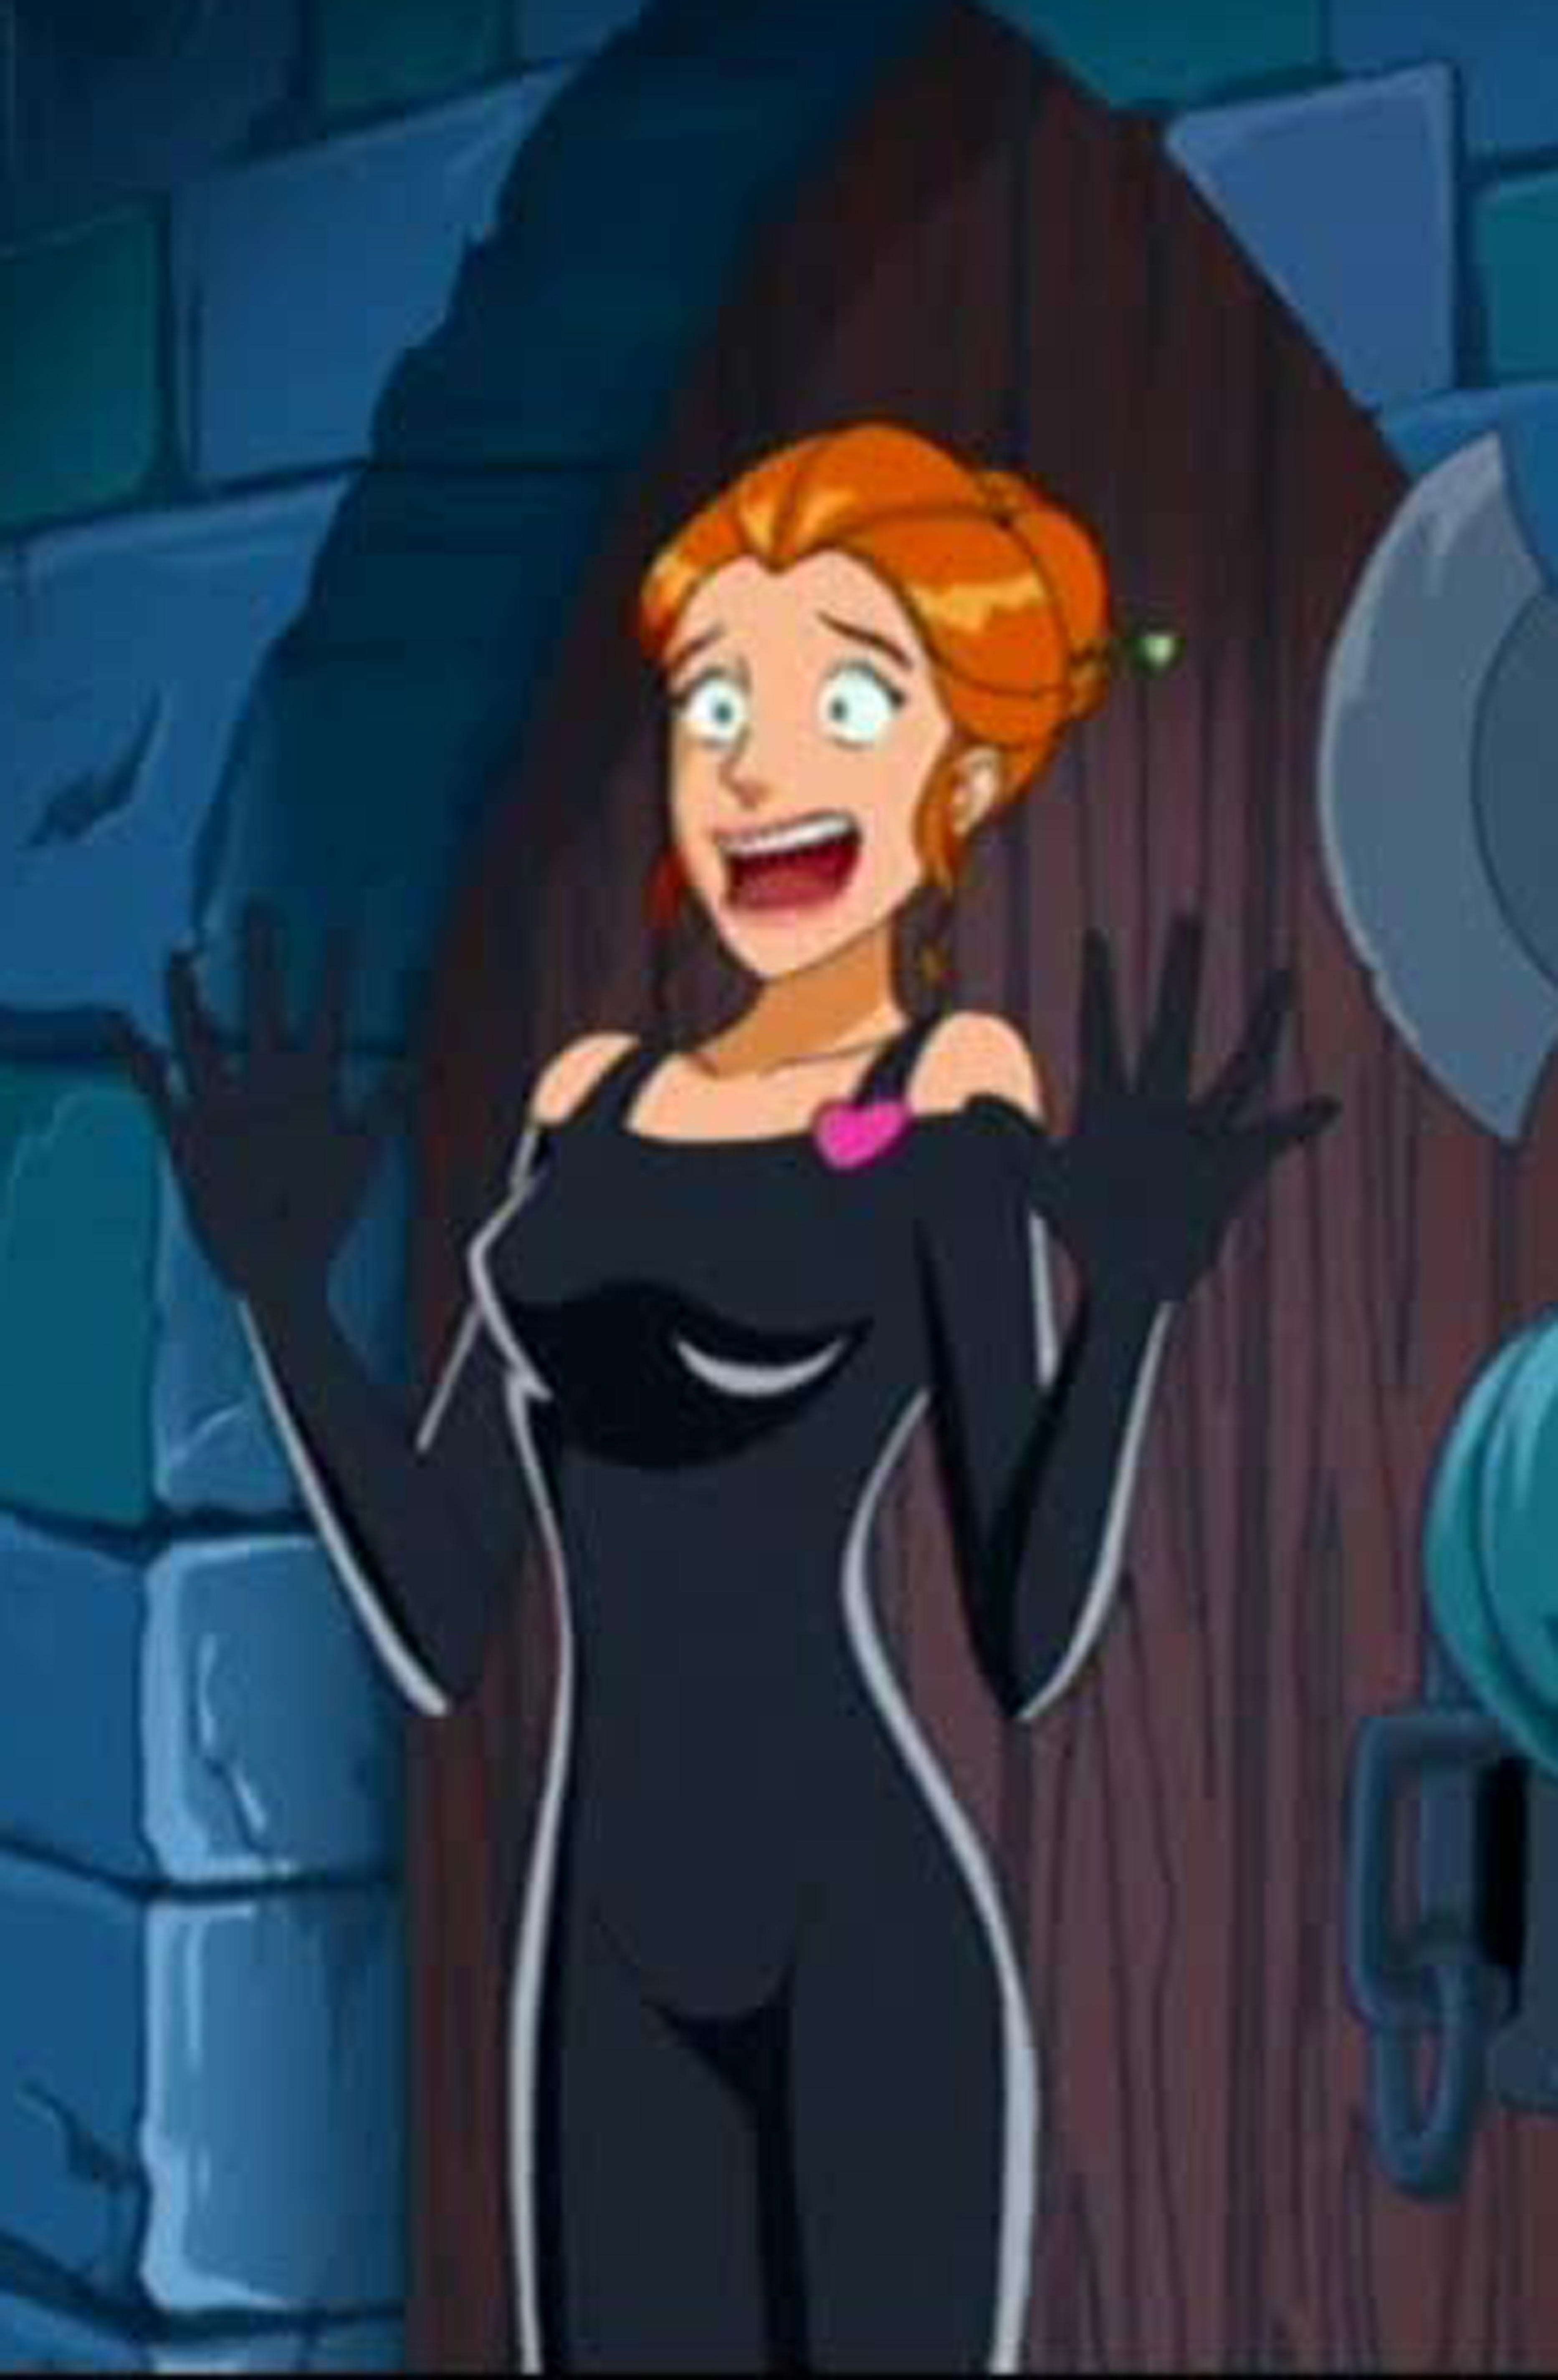 Tori lane and totally spies